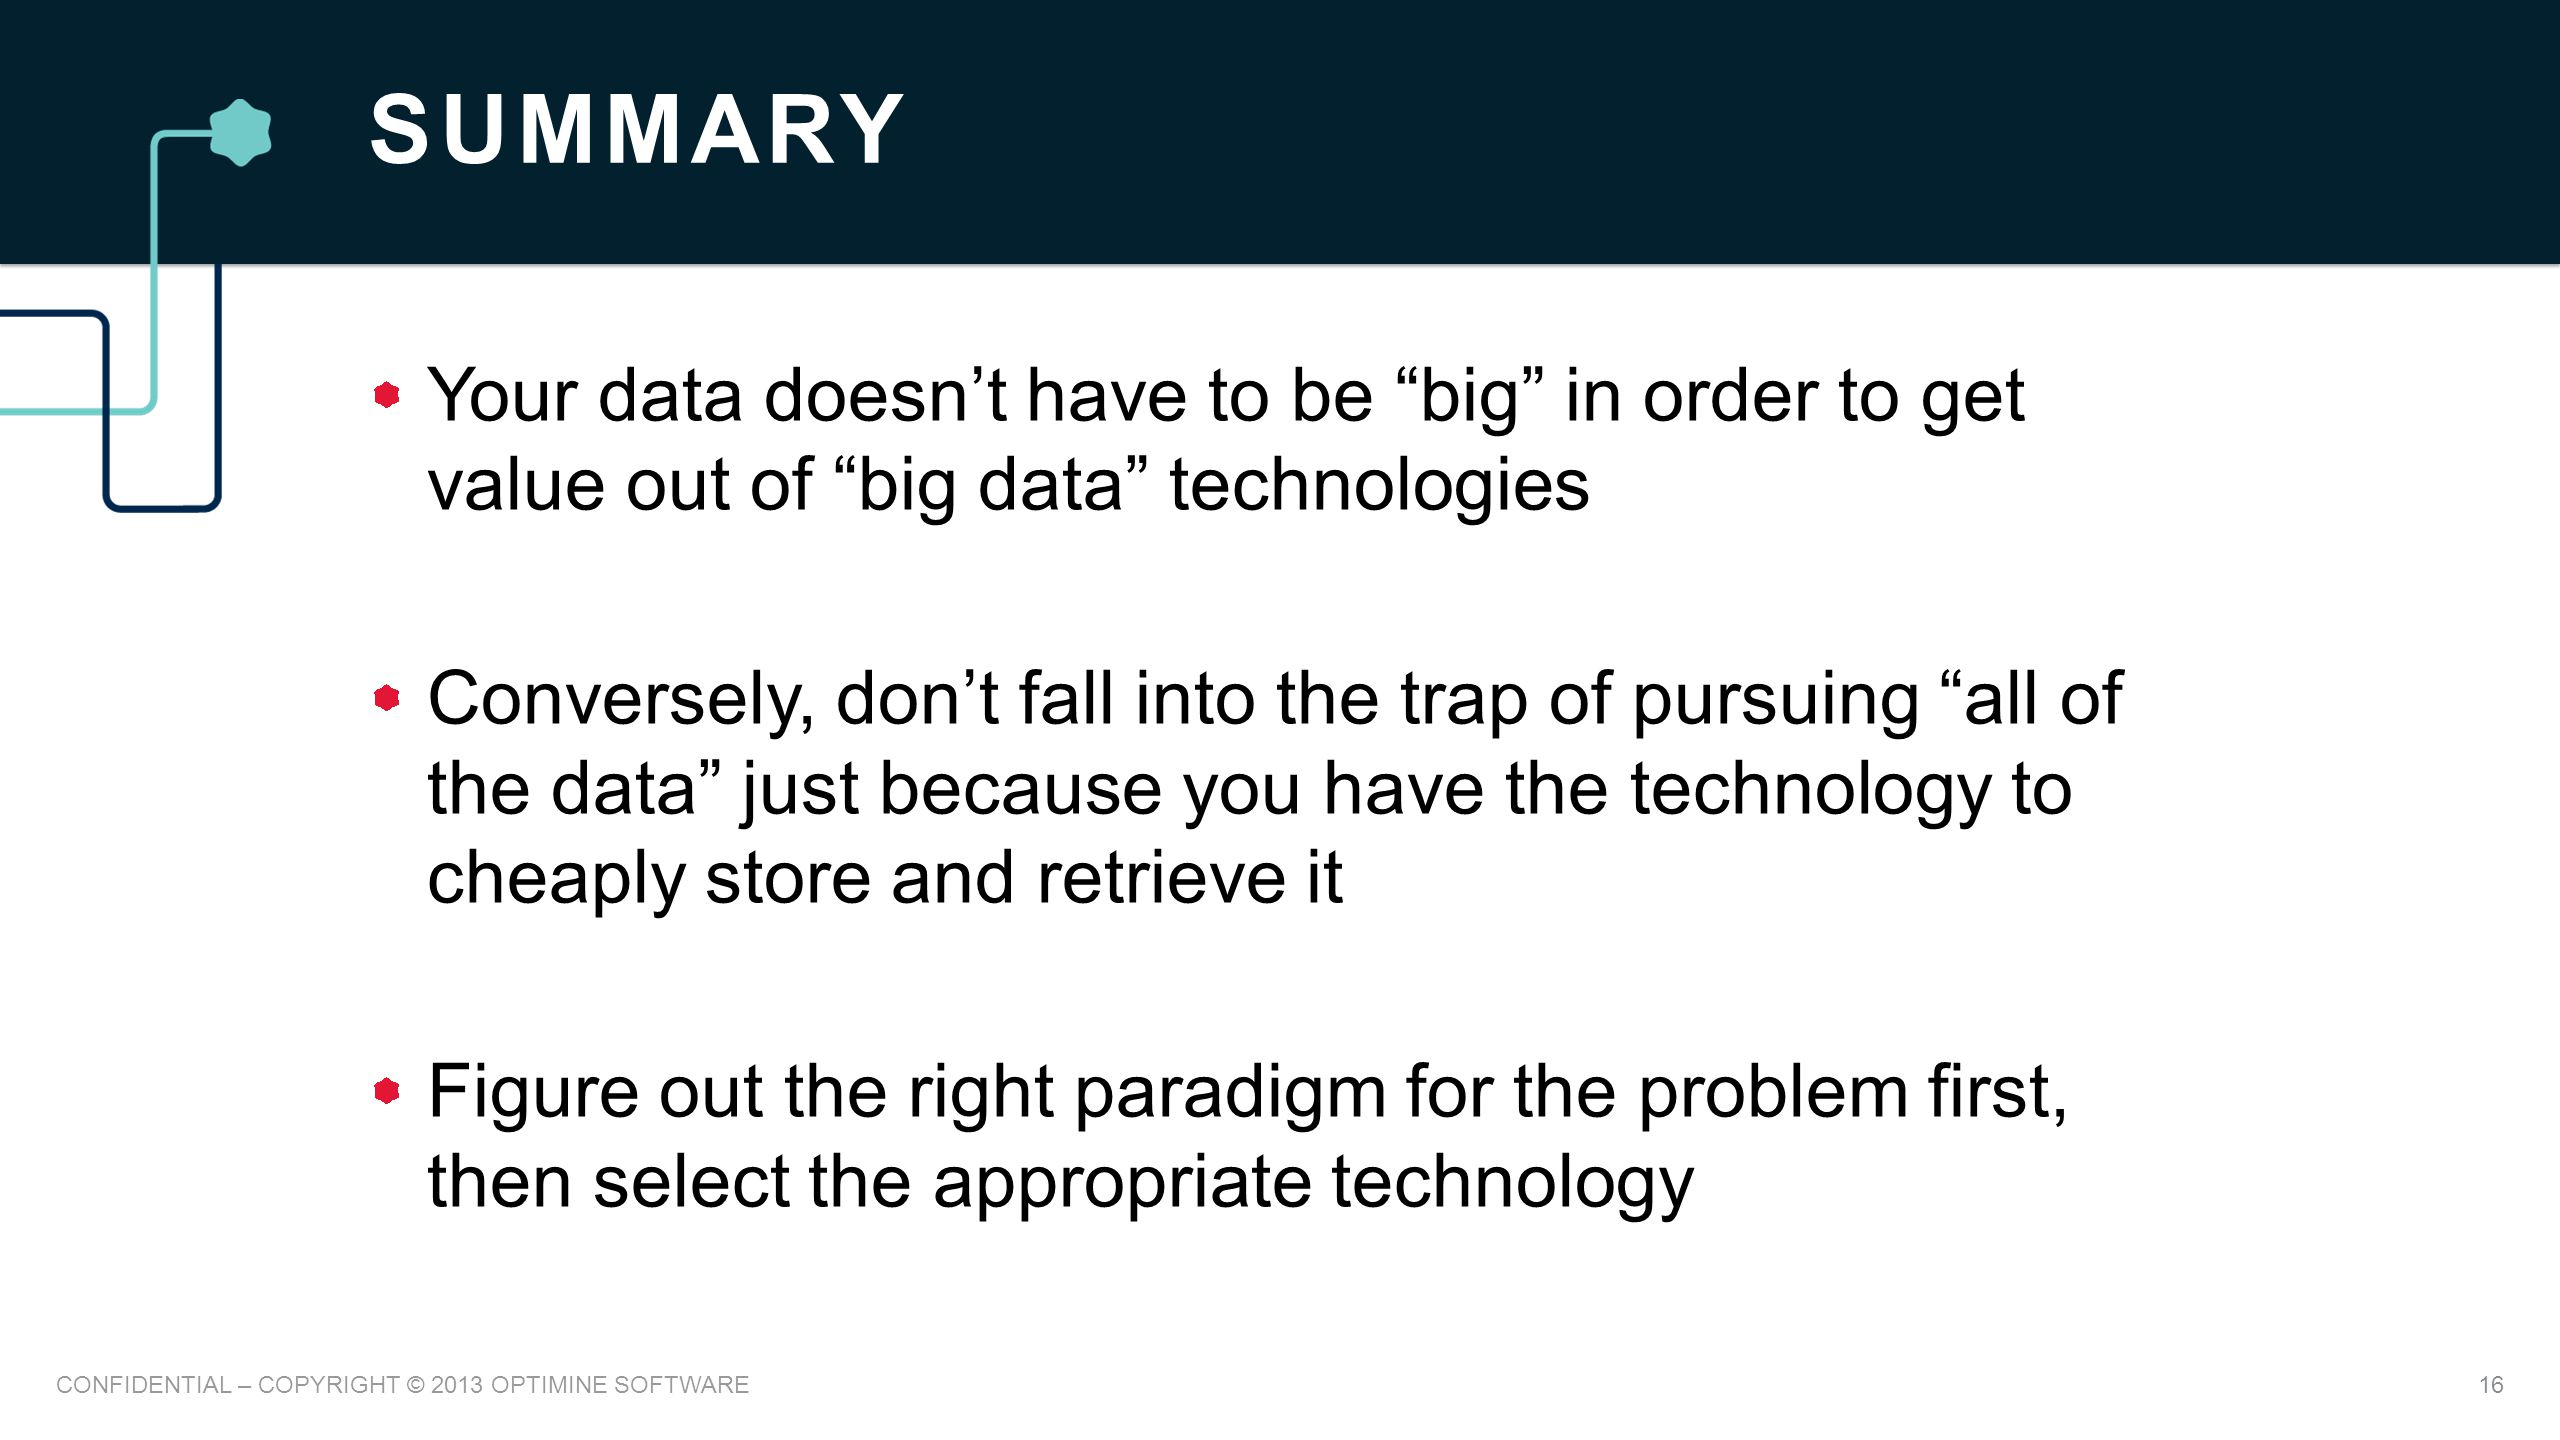 SUMMARY Your data doesn't have to be big in order to get value out of big data technologies Conversely, don't fall into the trap of pursuing all of the data just because you have the technology to cheaply store and retrieve it Figure out the right paradigm for the problem first, then select the appropriate technology 16CONFIDENTIAL – COPYRIGHT © 2013 OPTIMINE SOFTWARE